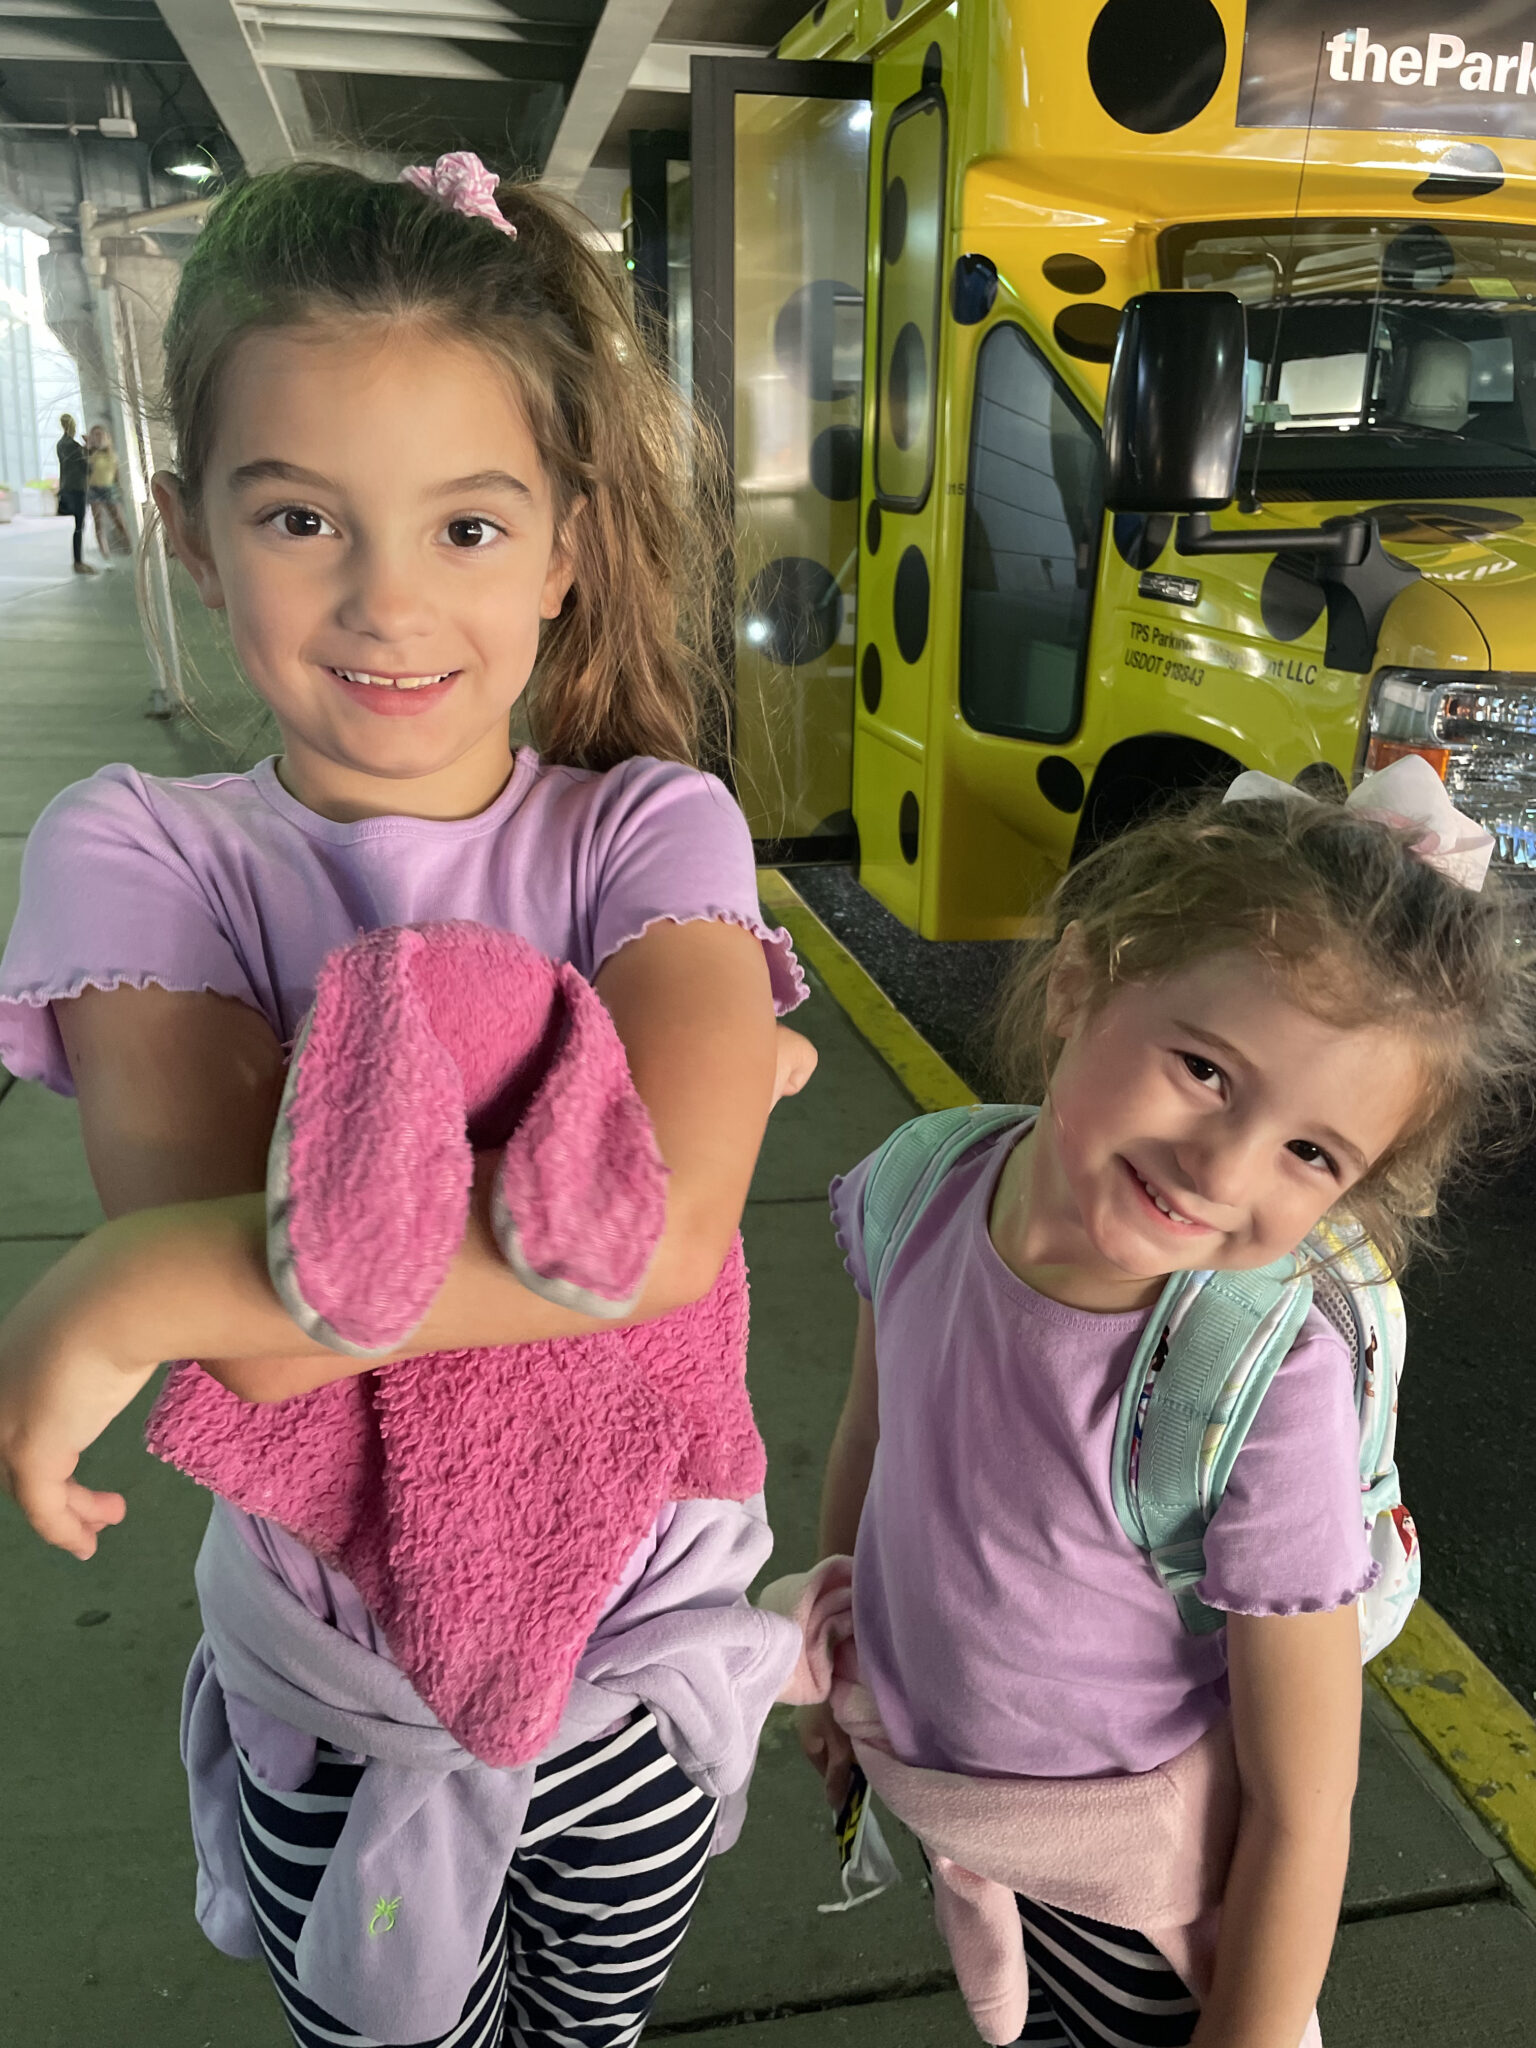 little girls in matching outfits at airport